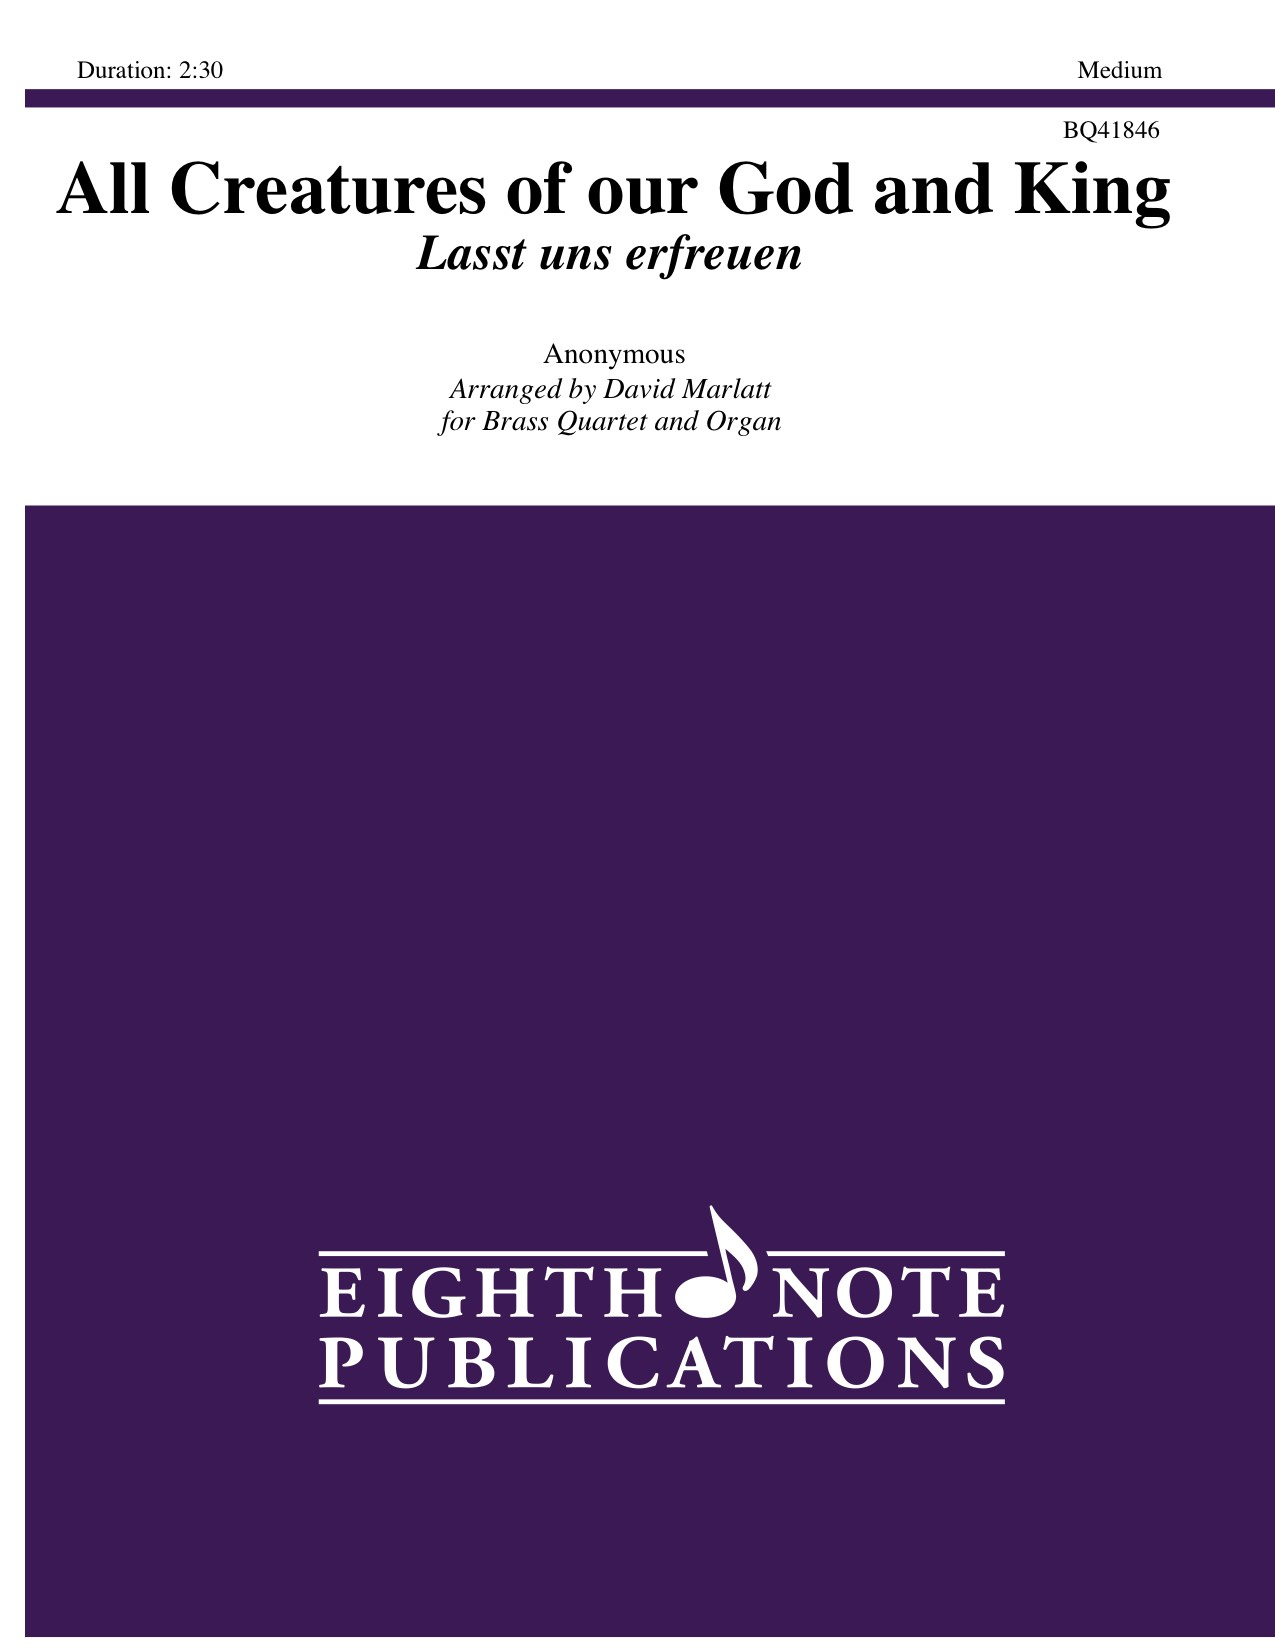 All Creatures of our God and King - Lasst uns erfreuen - Giovanni Gabrieli